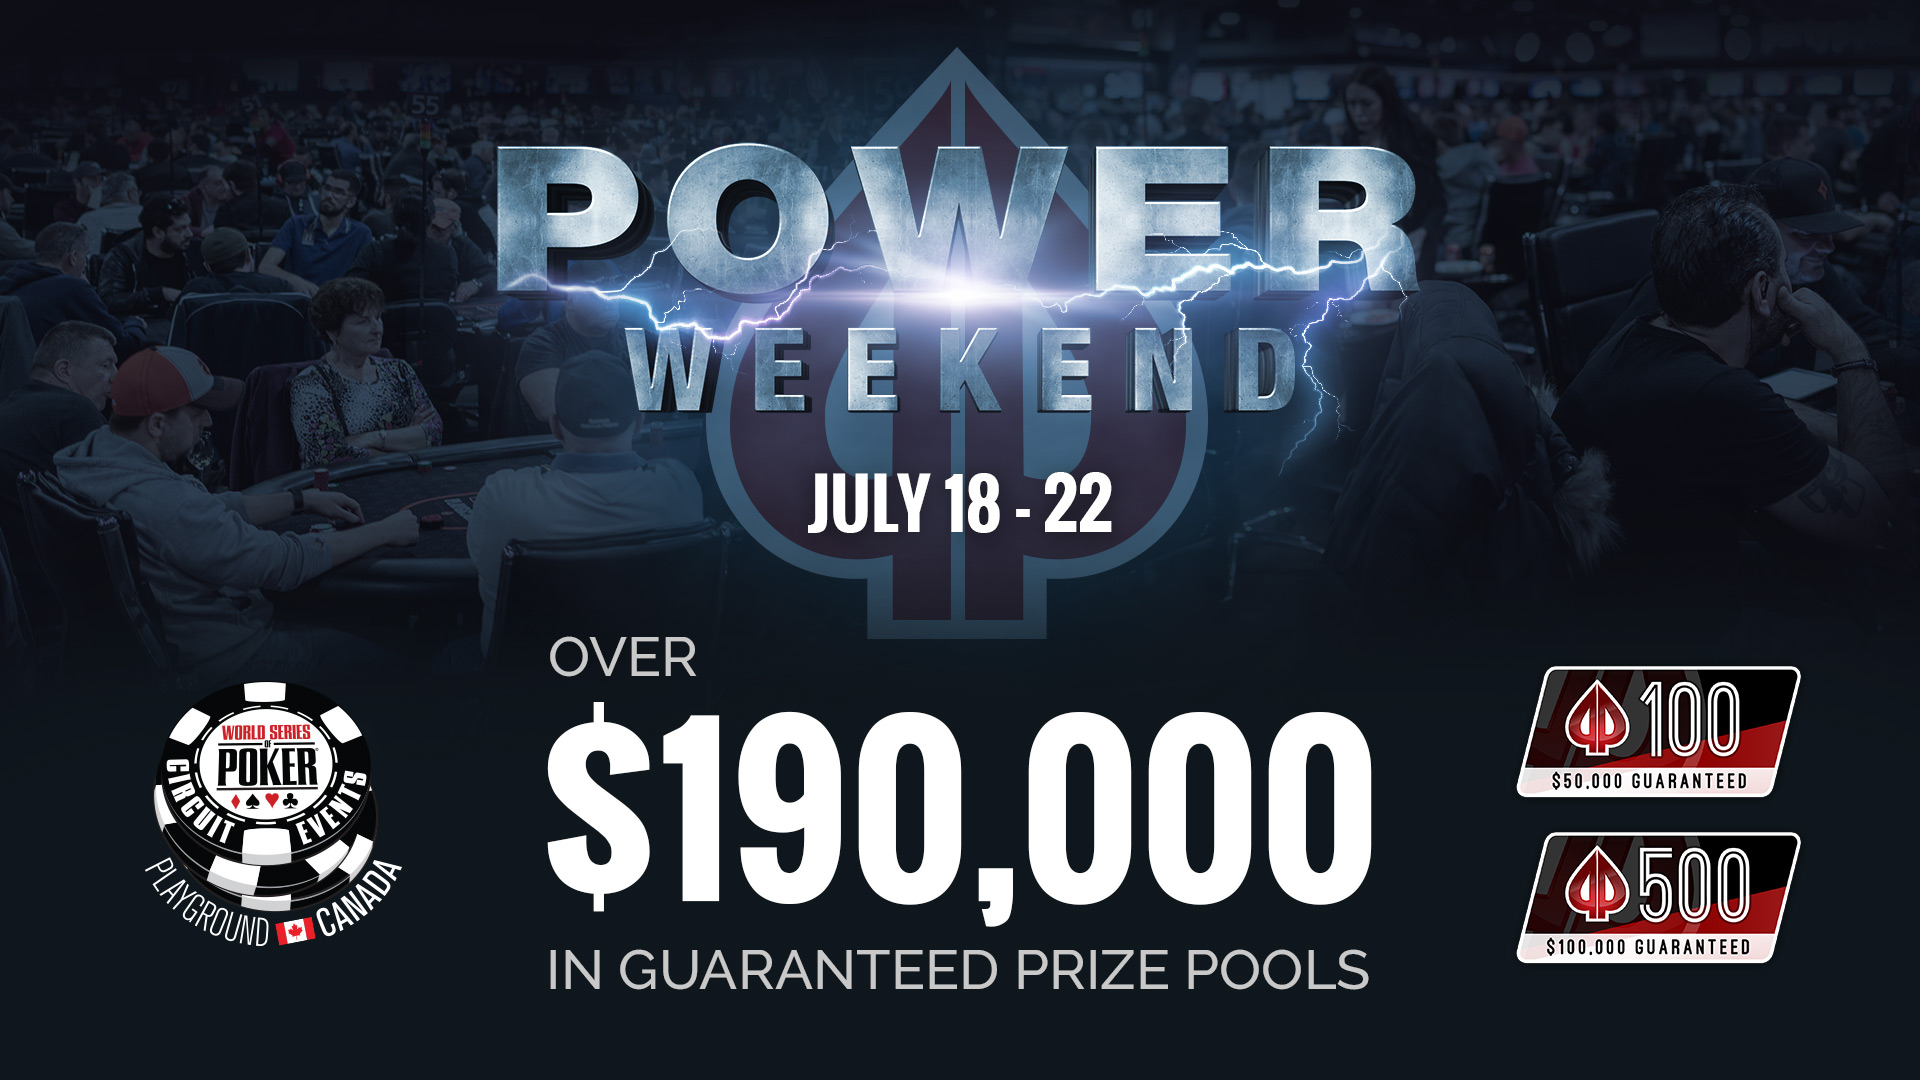 The July Power Weekend is just around the corner